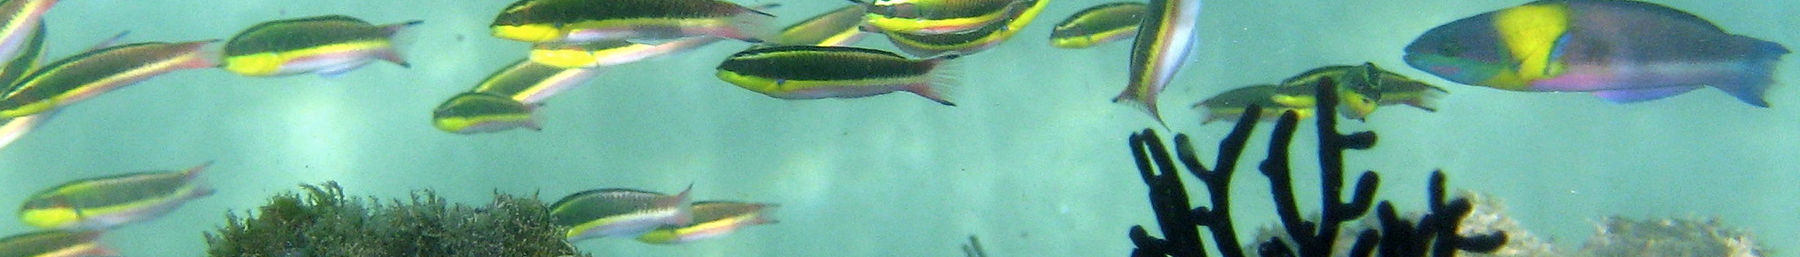 tropical fish near Playa Las Gatas